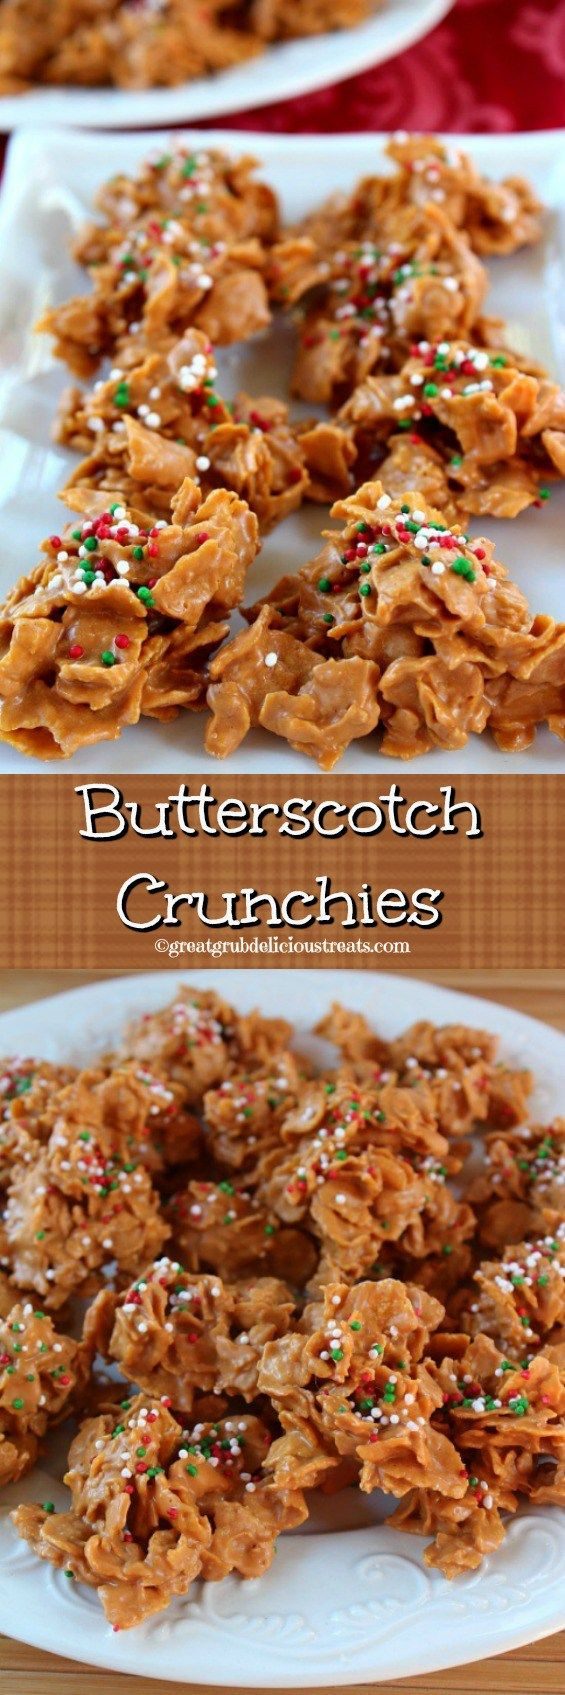 Butterscotch Crunchies